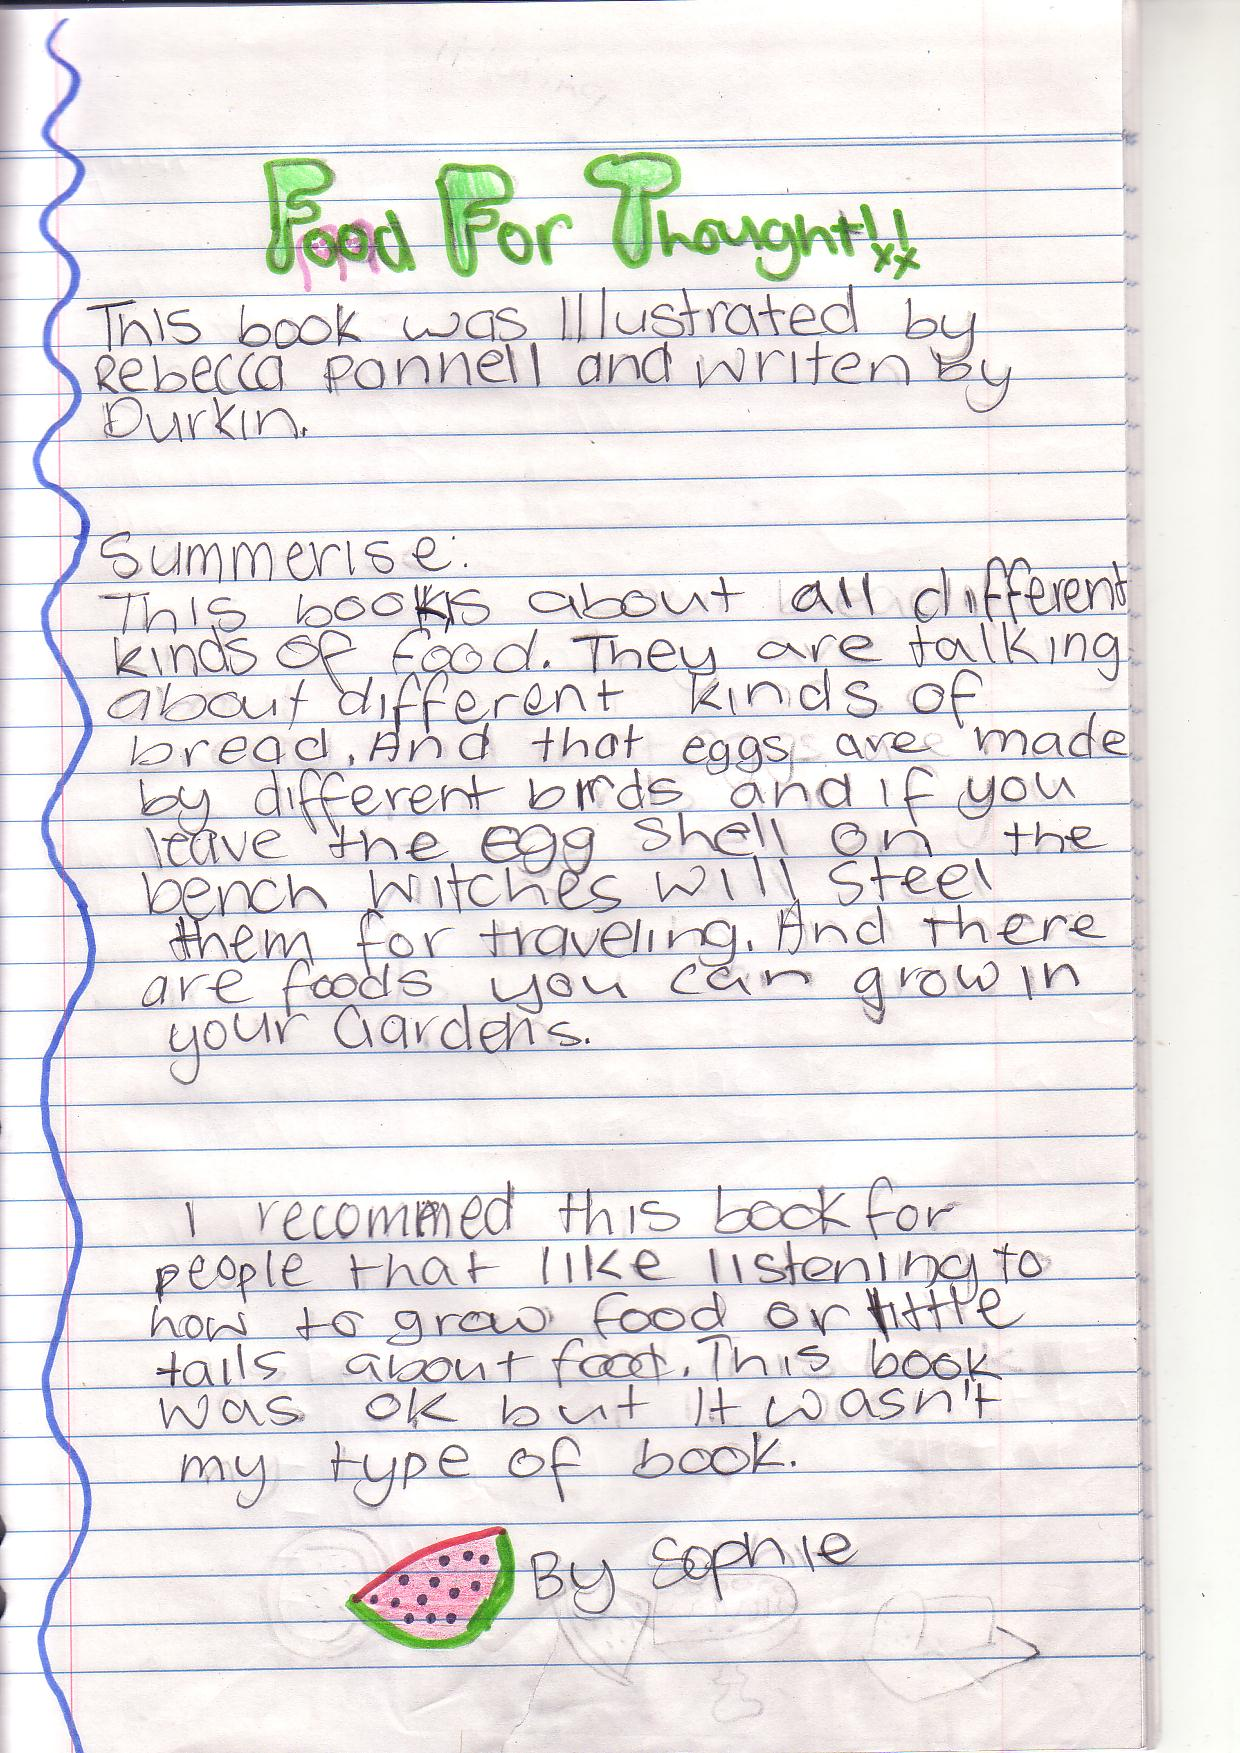 4th grade book report summary Writing a formal book report lower elementary format 2nd and 3rd grade students please include a full summary of the book's.